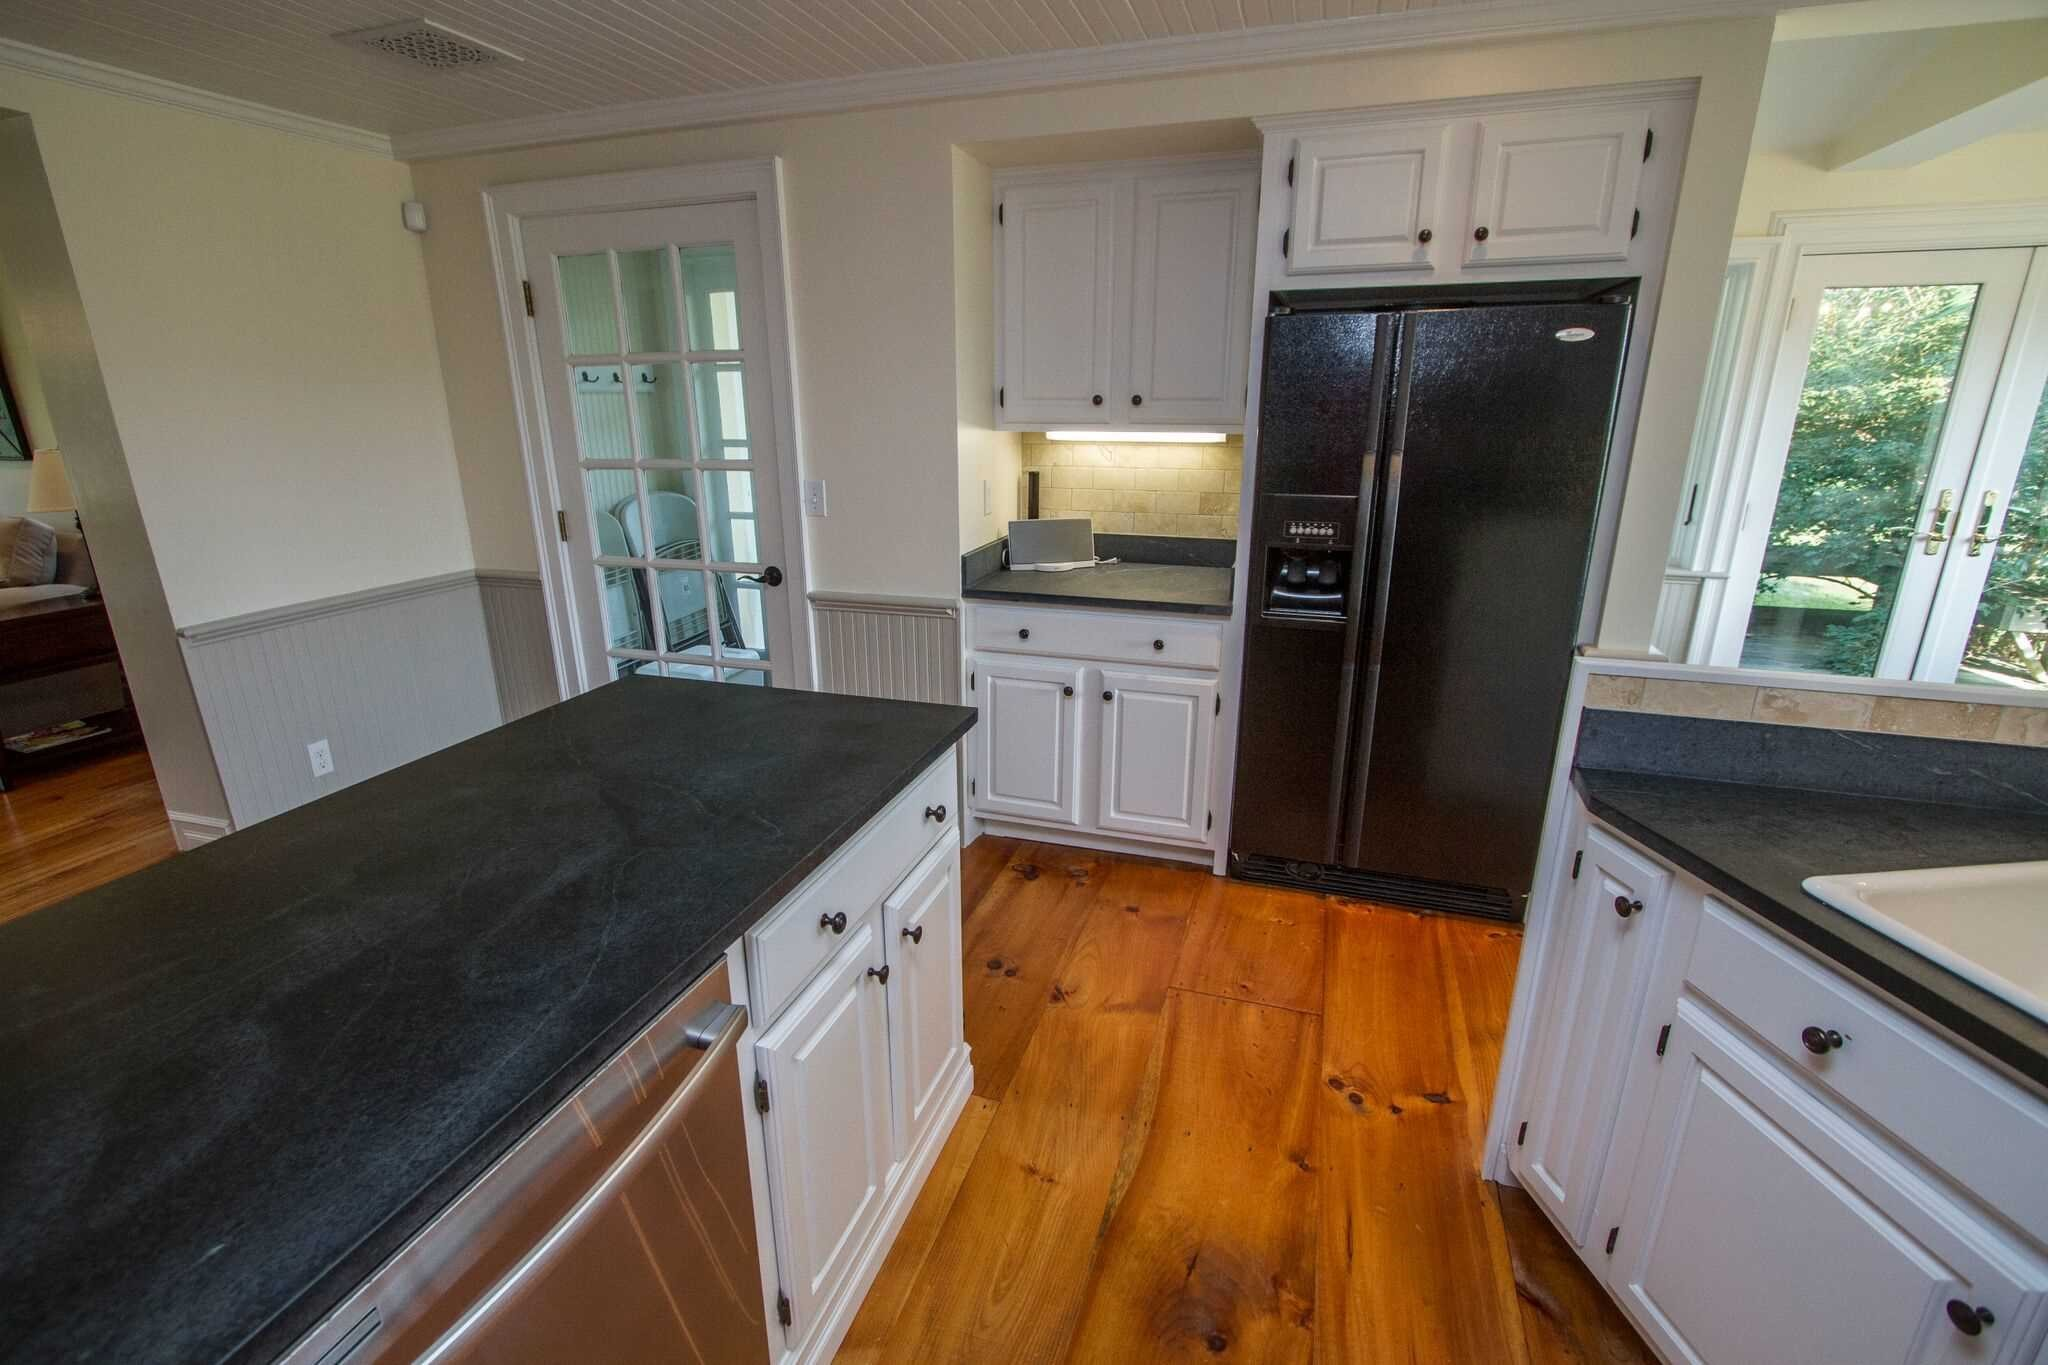 Additional photo for property listing at 1216 ROUTE 9J 1216 ROUTE 9J Stuyvesant, New York 12173 United States